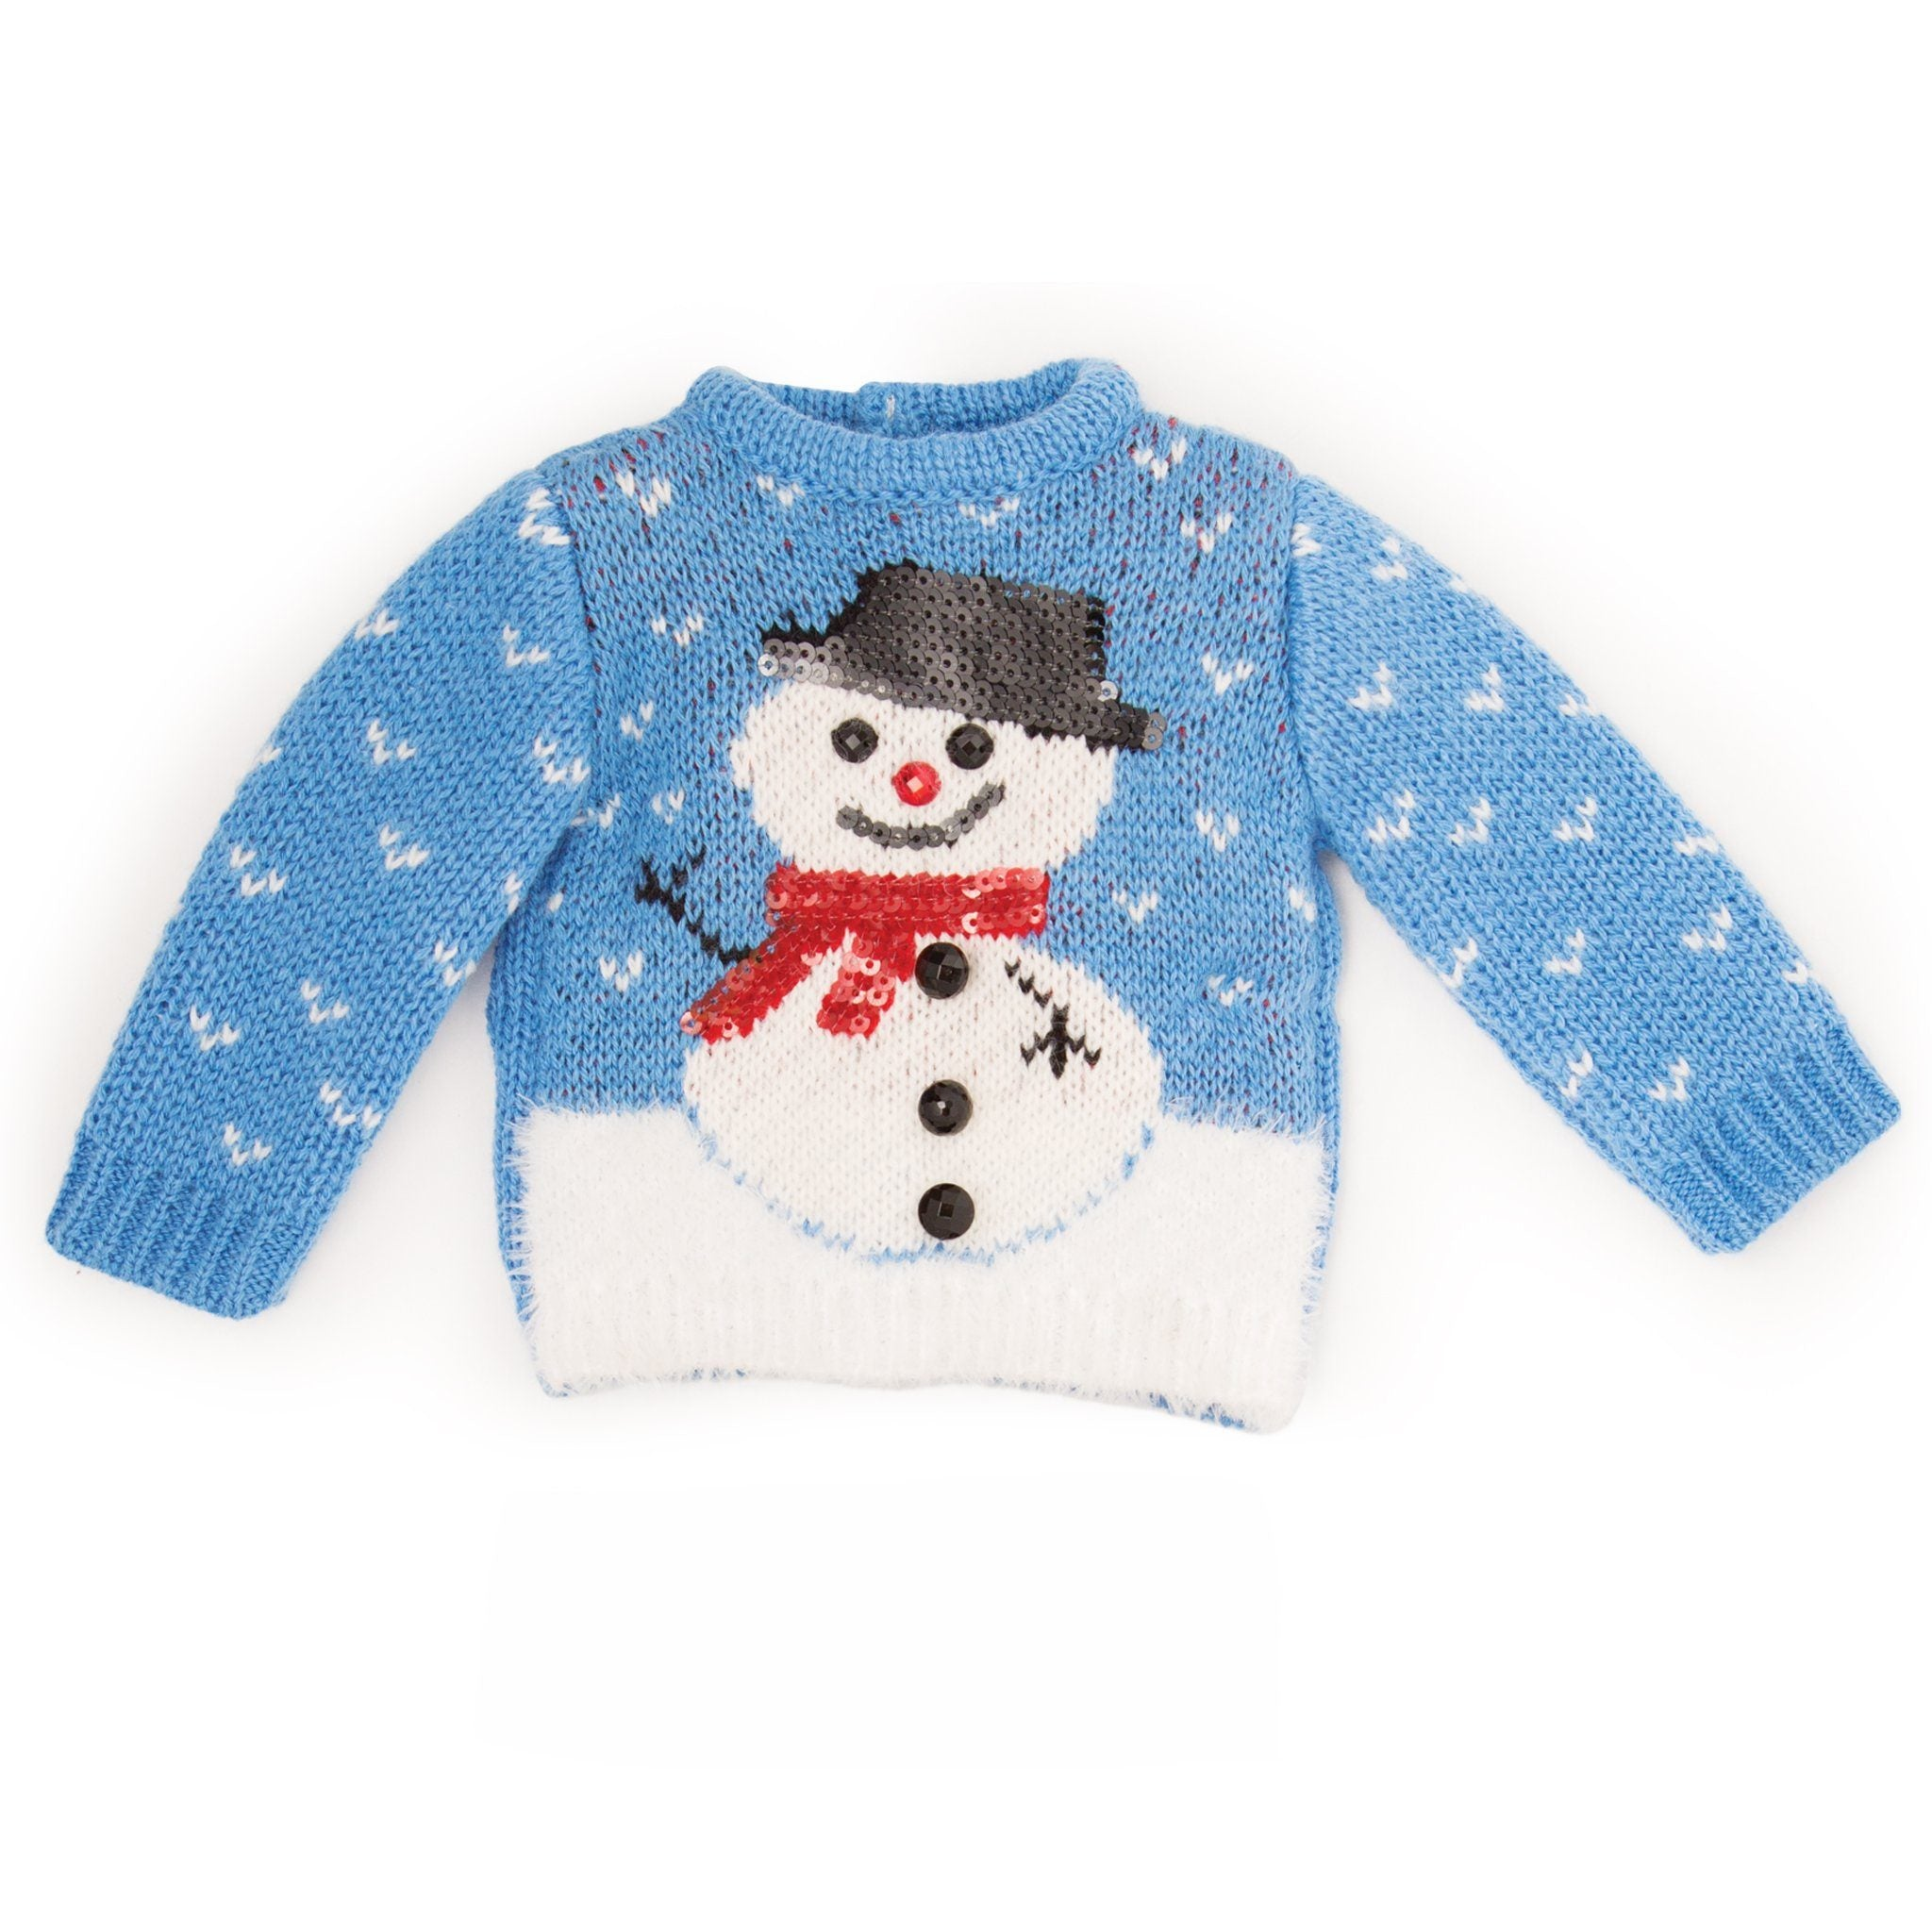 Snow Cute knit fuzzy blue sweater with snowman fits all 18 inch dolls.